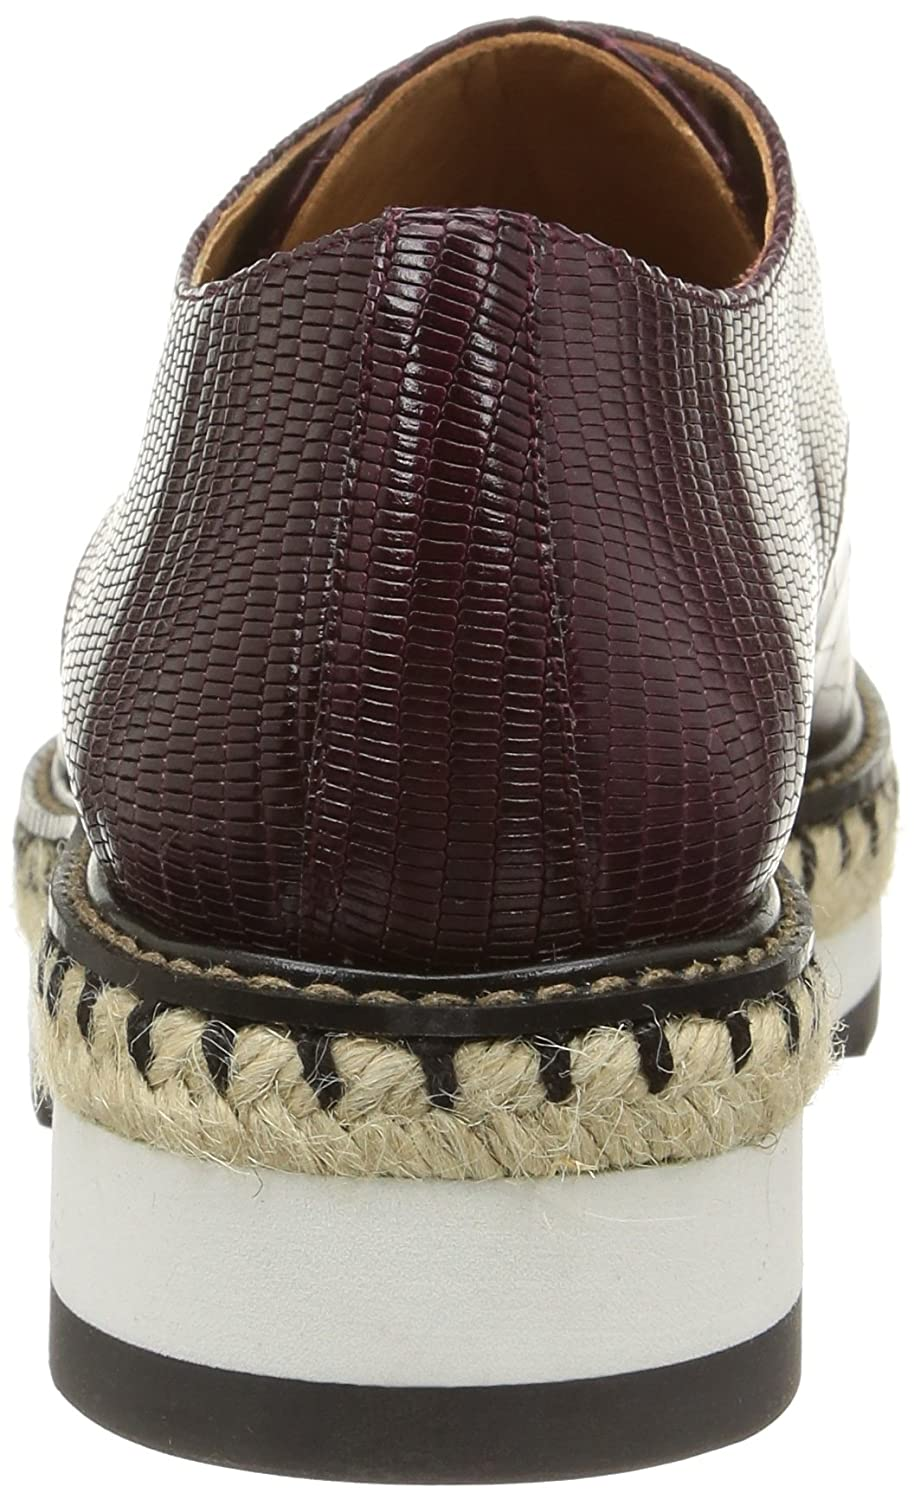 Camelia-Exotic Leather - Zapatos para Mujer, Color Aubergine, Talla 37 Castaner